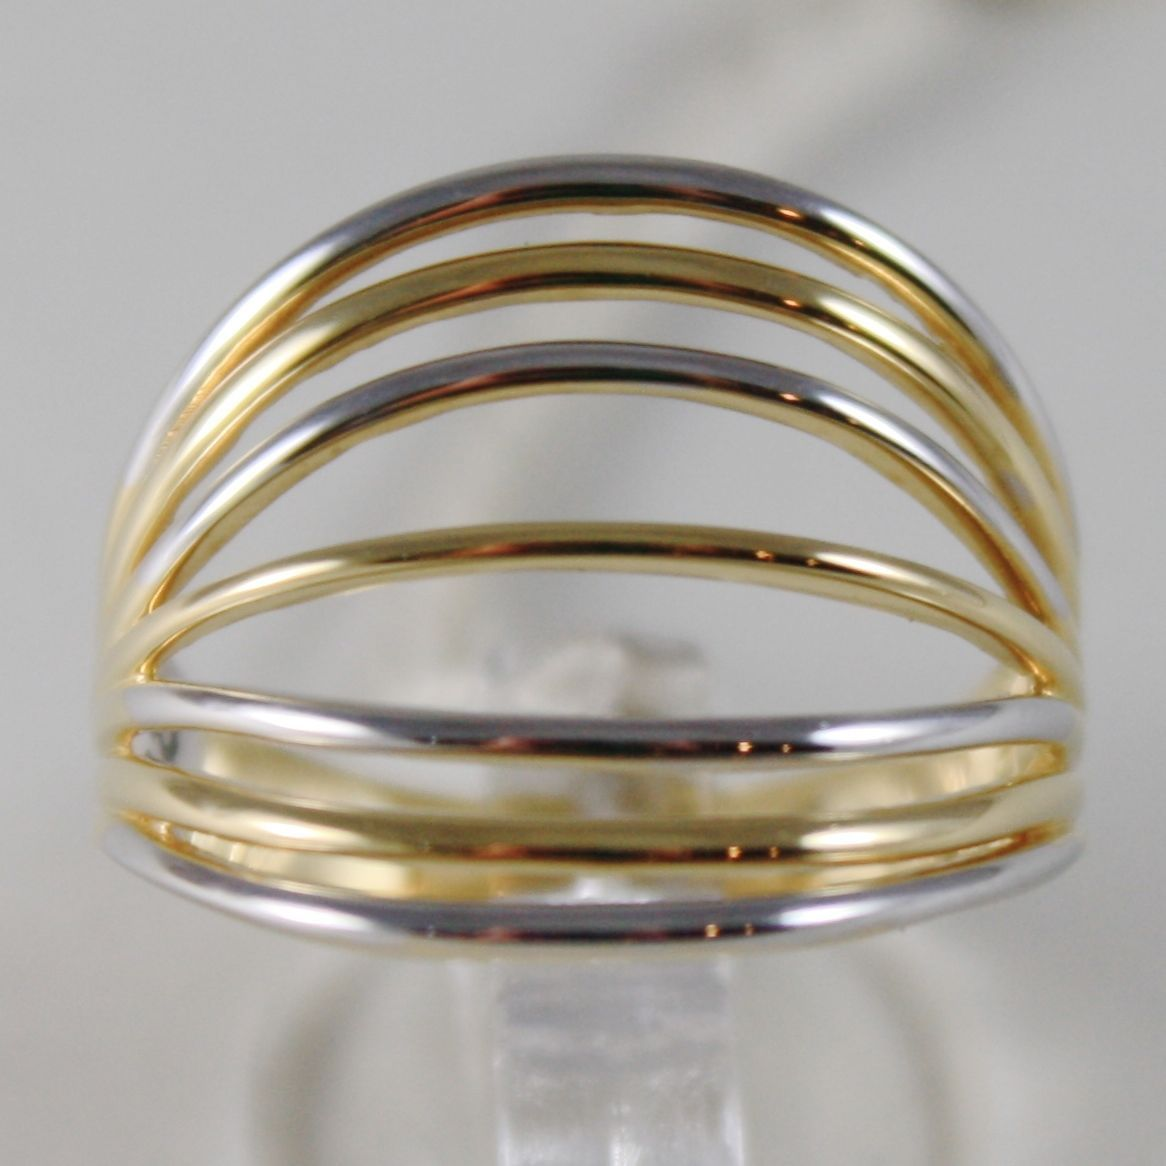 SOLID 18K WHITE & YELLOW GOLD BAND RING MULTIWIRE ALTERNATE MADE IN ITALY